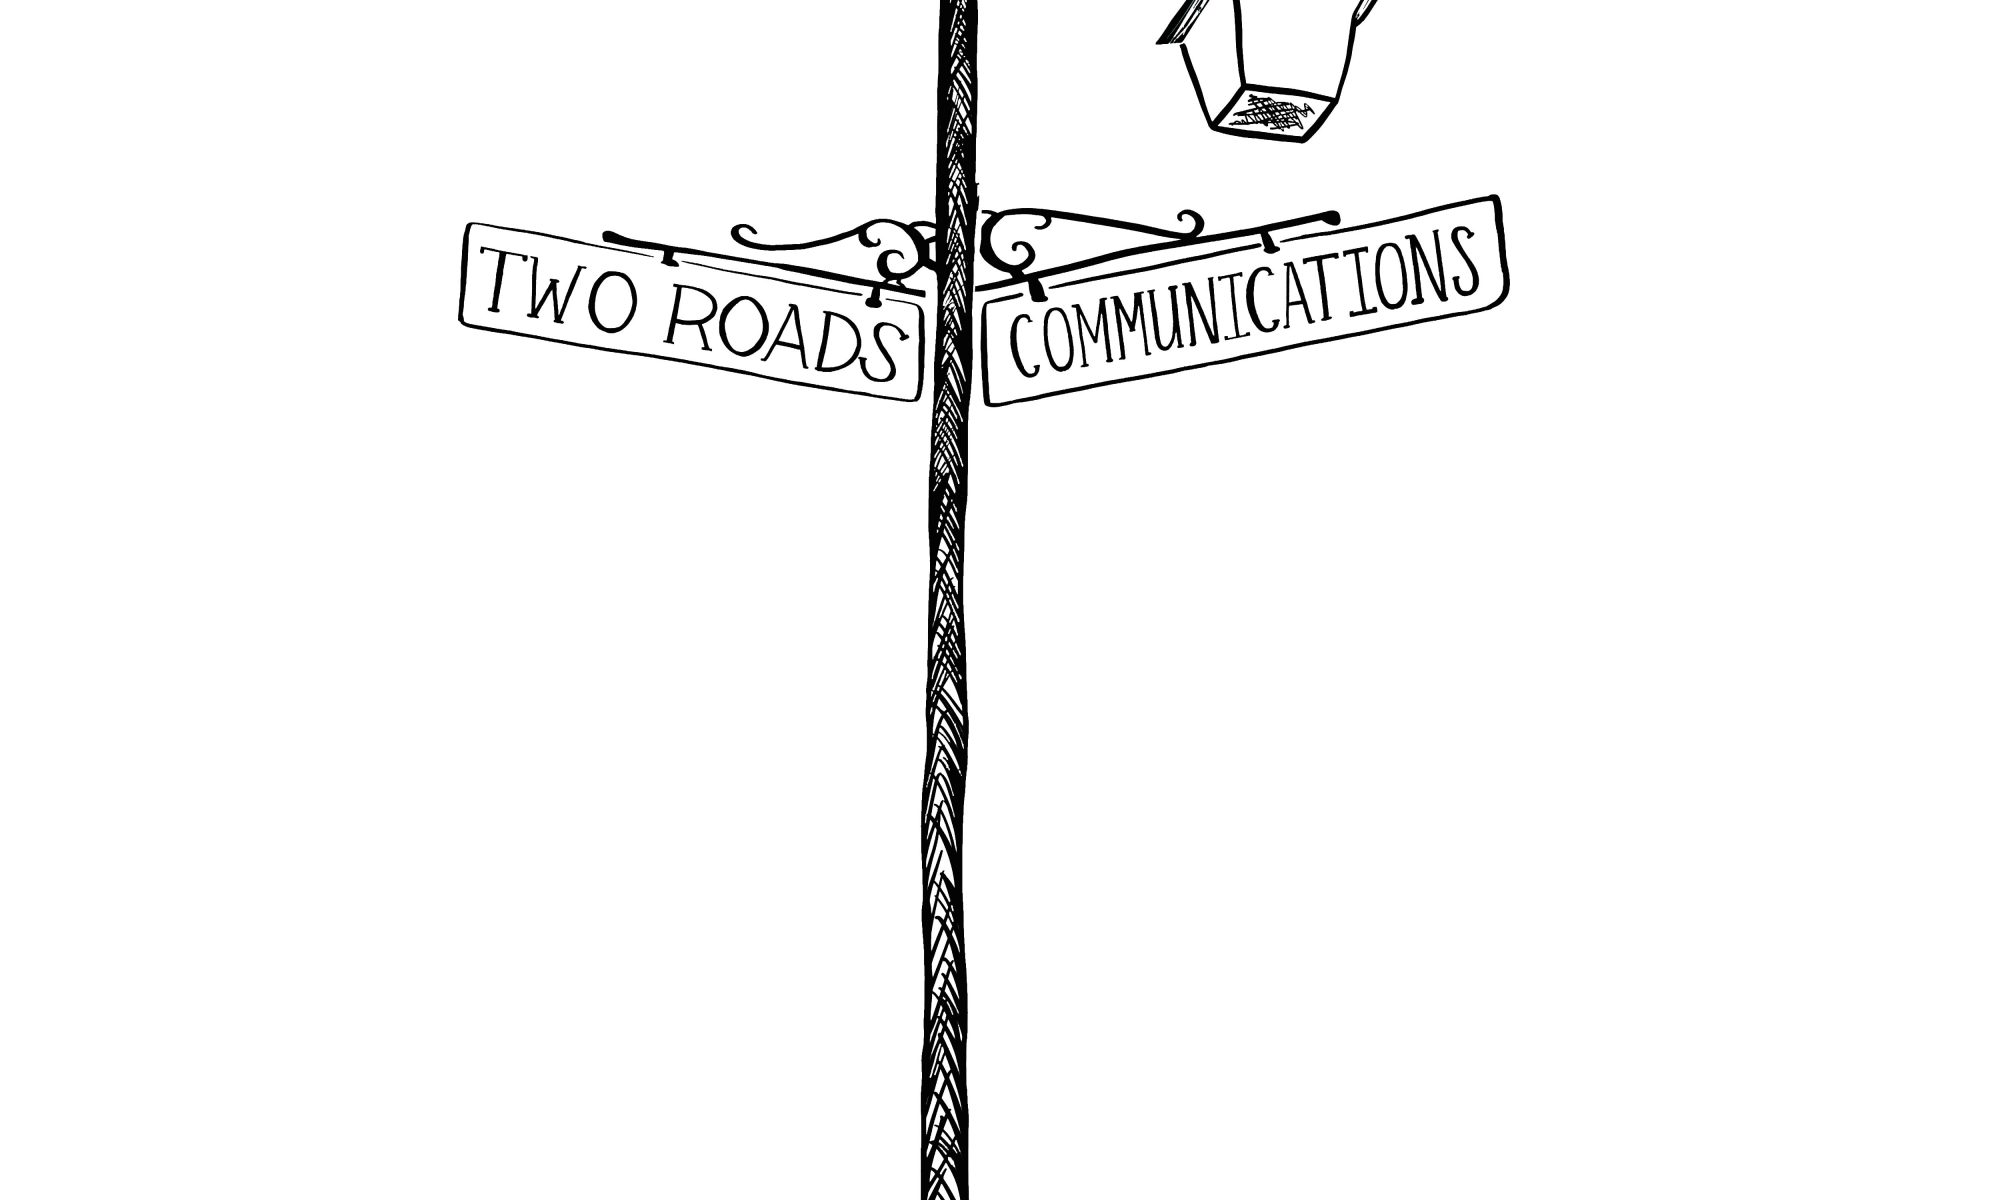 Two Roads Communications logo